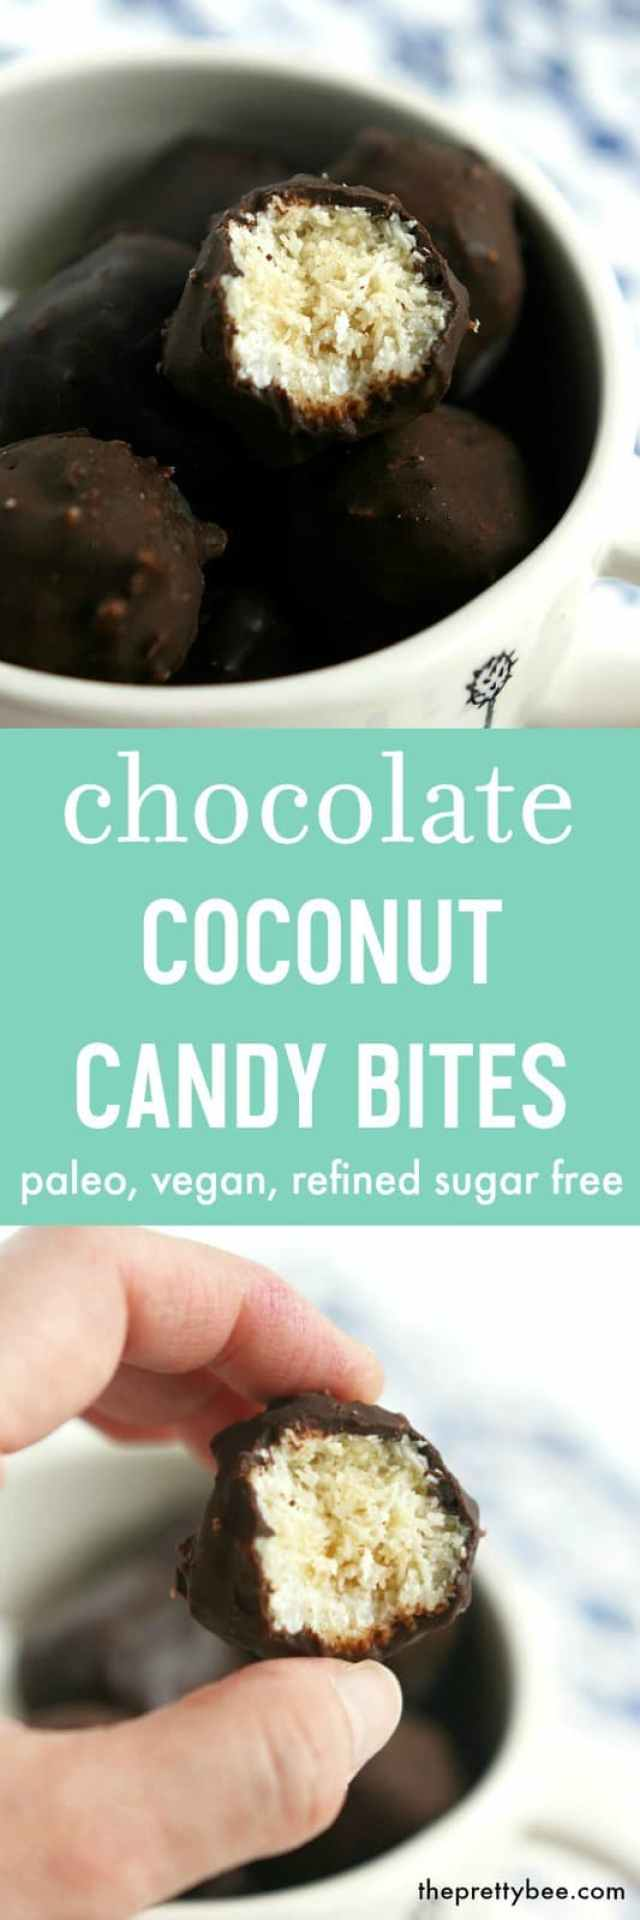 Decadent and delicious, these coconut candy bites are vegan, paleo, and allergy friendly!